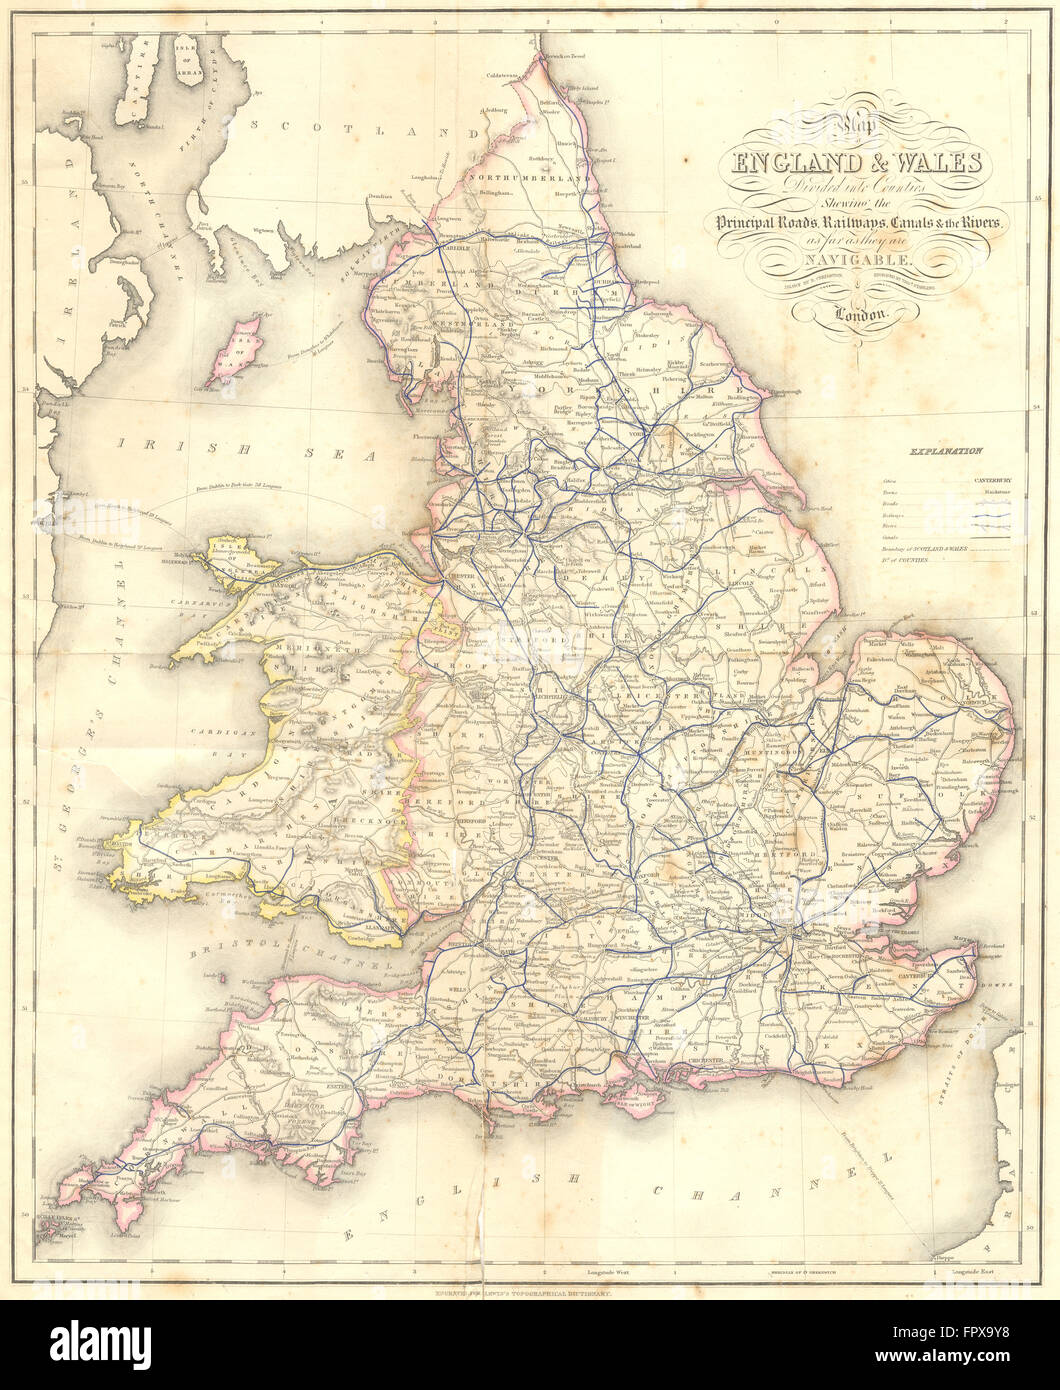 Map Of England Rivers And Canals.England Wales Roads Rail Canals Rivers Lewis 1848 Antique Map